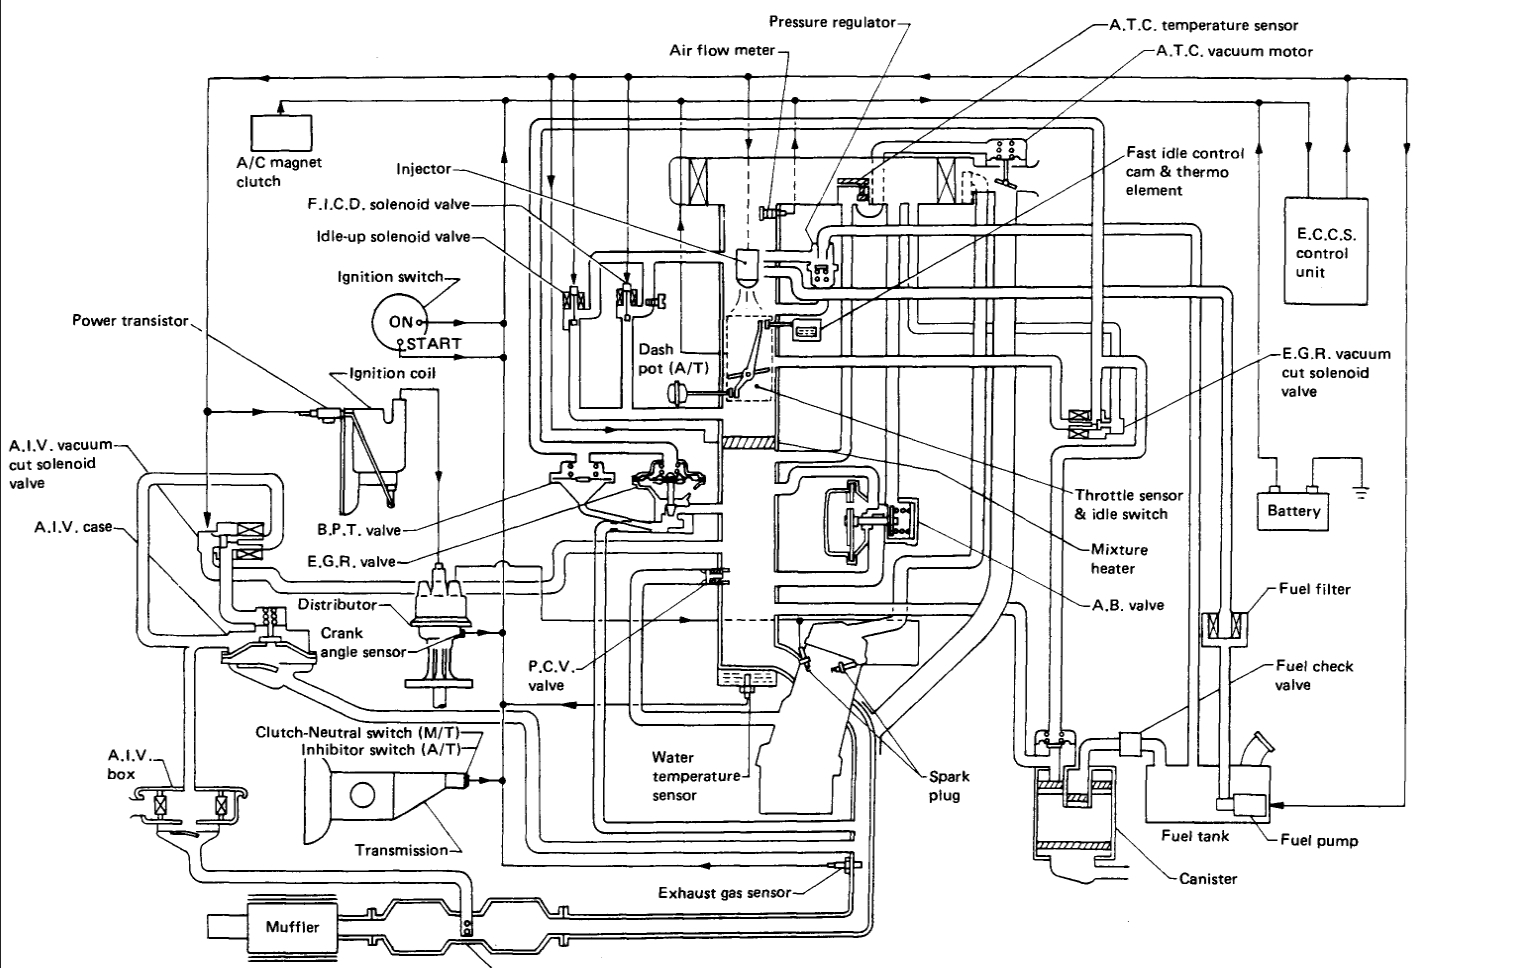 vacuum diagram for a z24 four cylinder two wheel drive manual 180. Black Bedroom Furniture Sets. Home Design Ideas